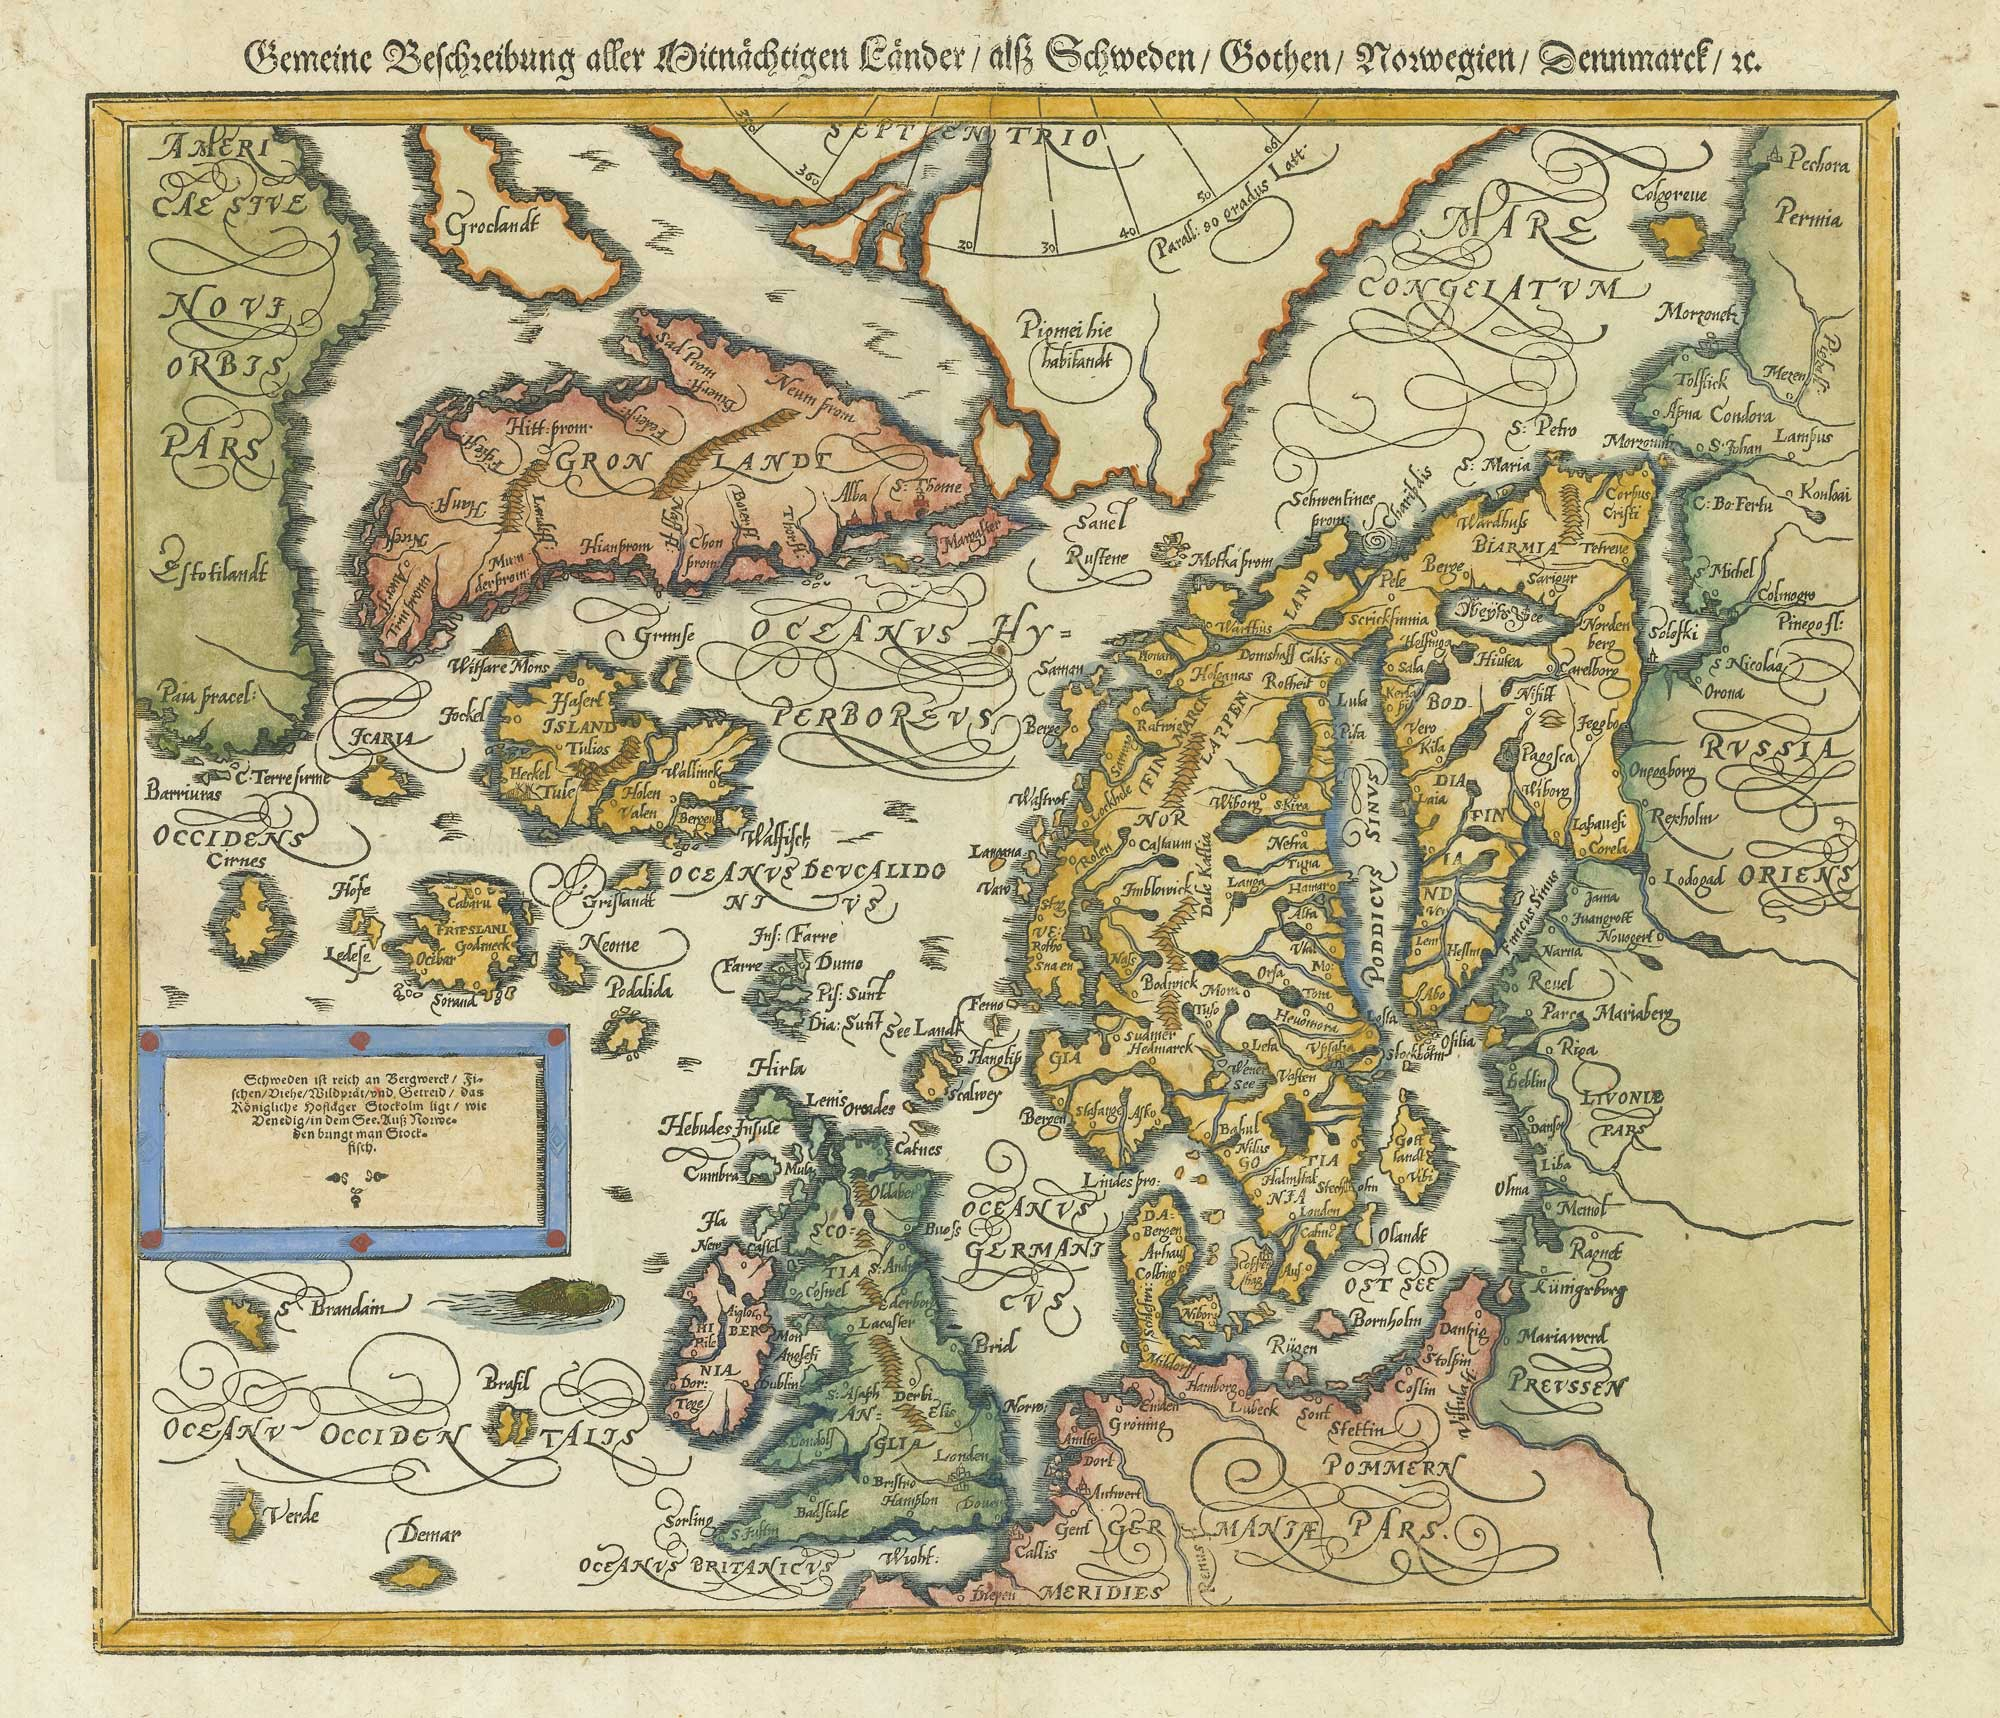 Munster Scandinavia after Ortelius